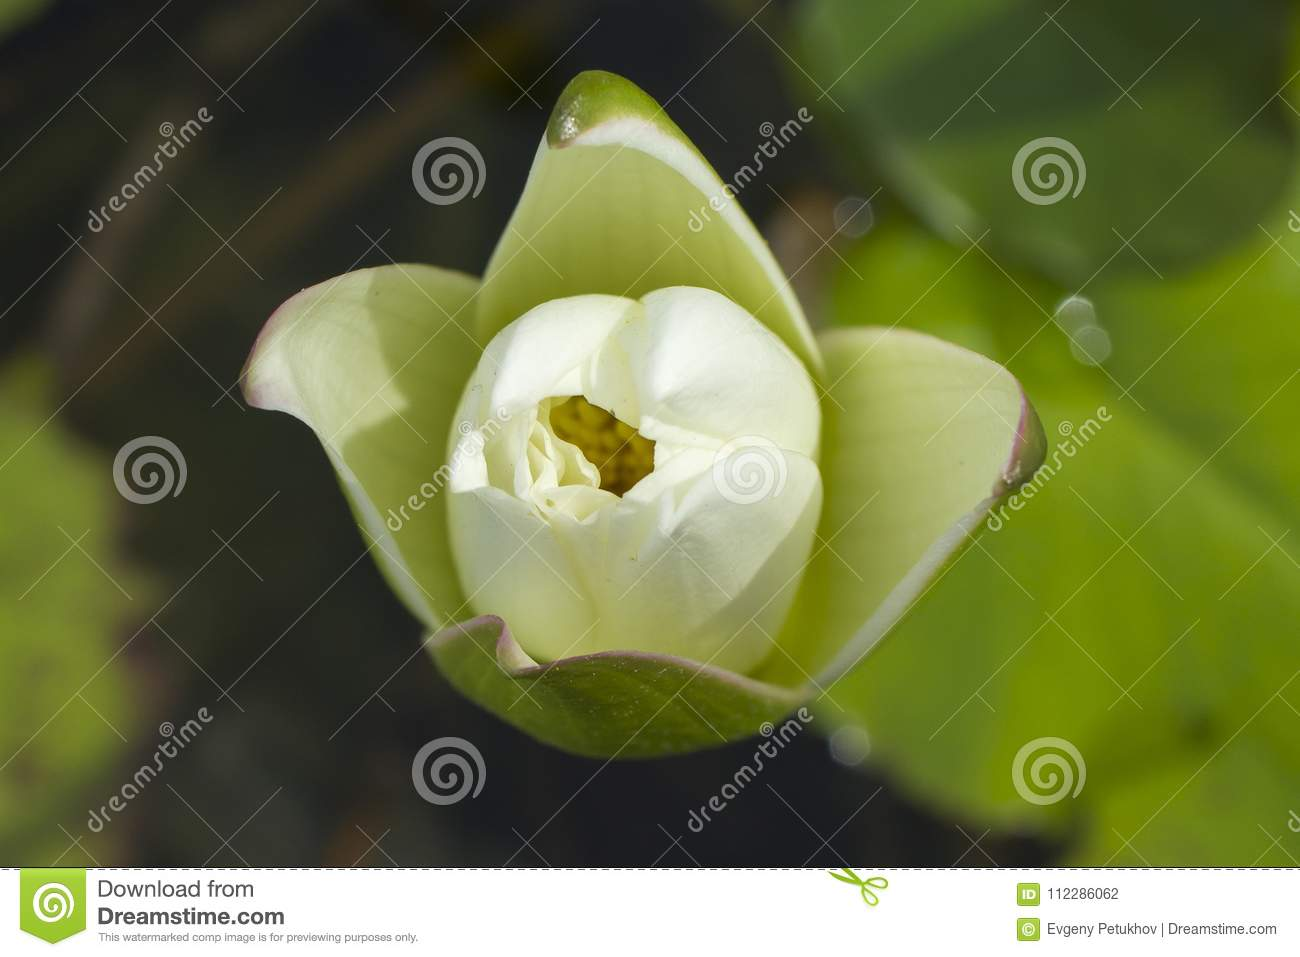 Elegant white lily flower lotus in water the lotus flower water download elegant white lily flower lotus in water the lotus flower water lily is a izmirmasajfo